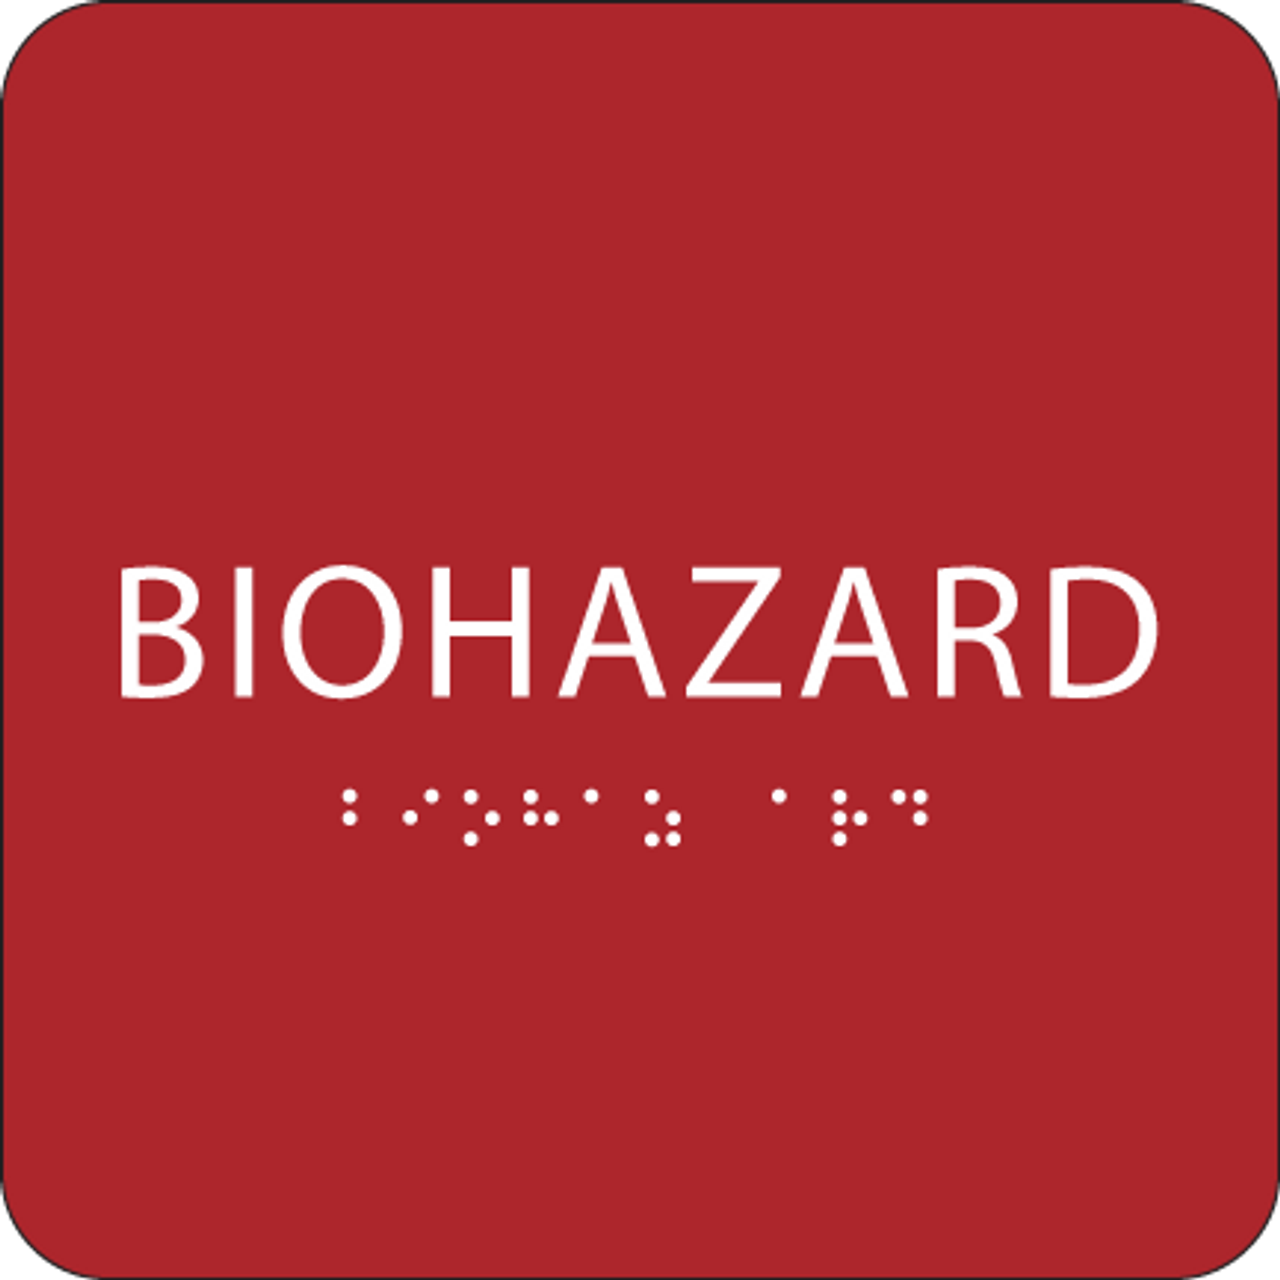 Red Biohazard ADA Sign